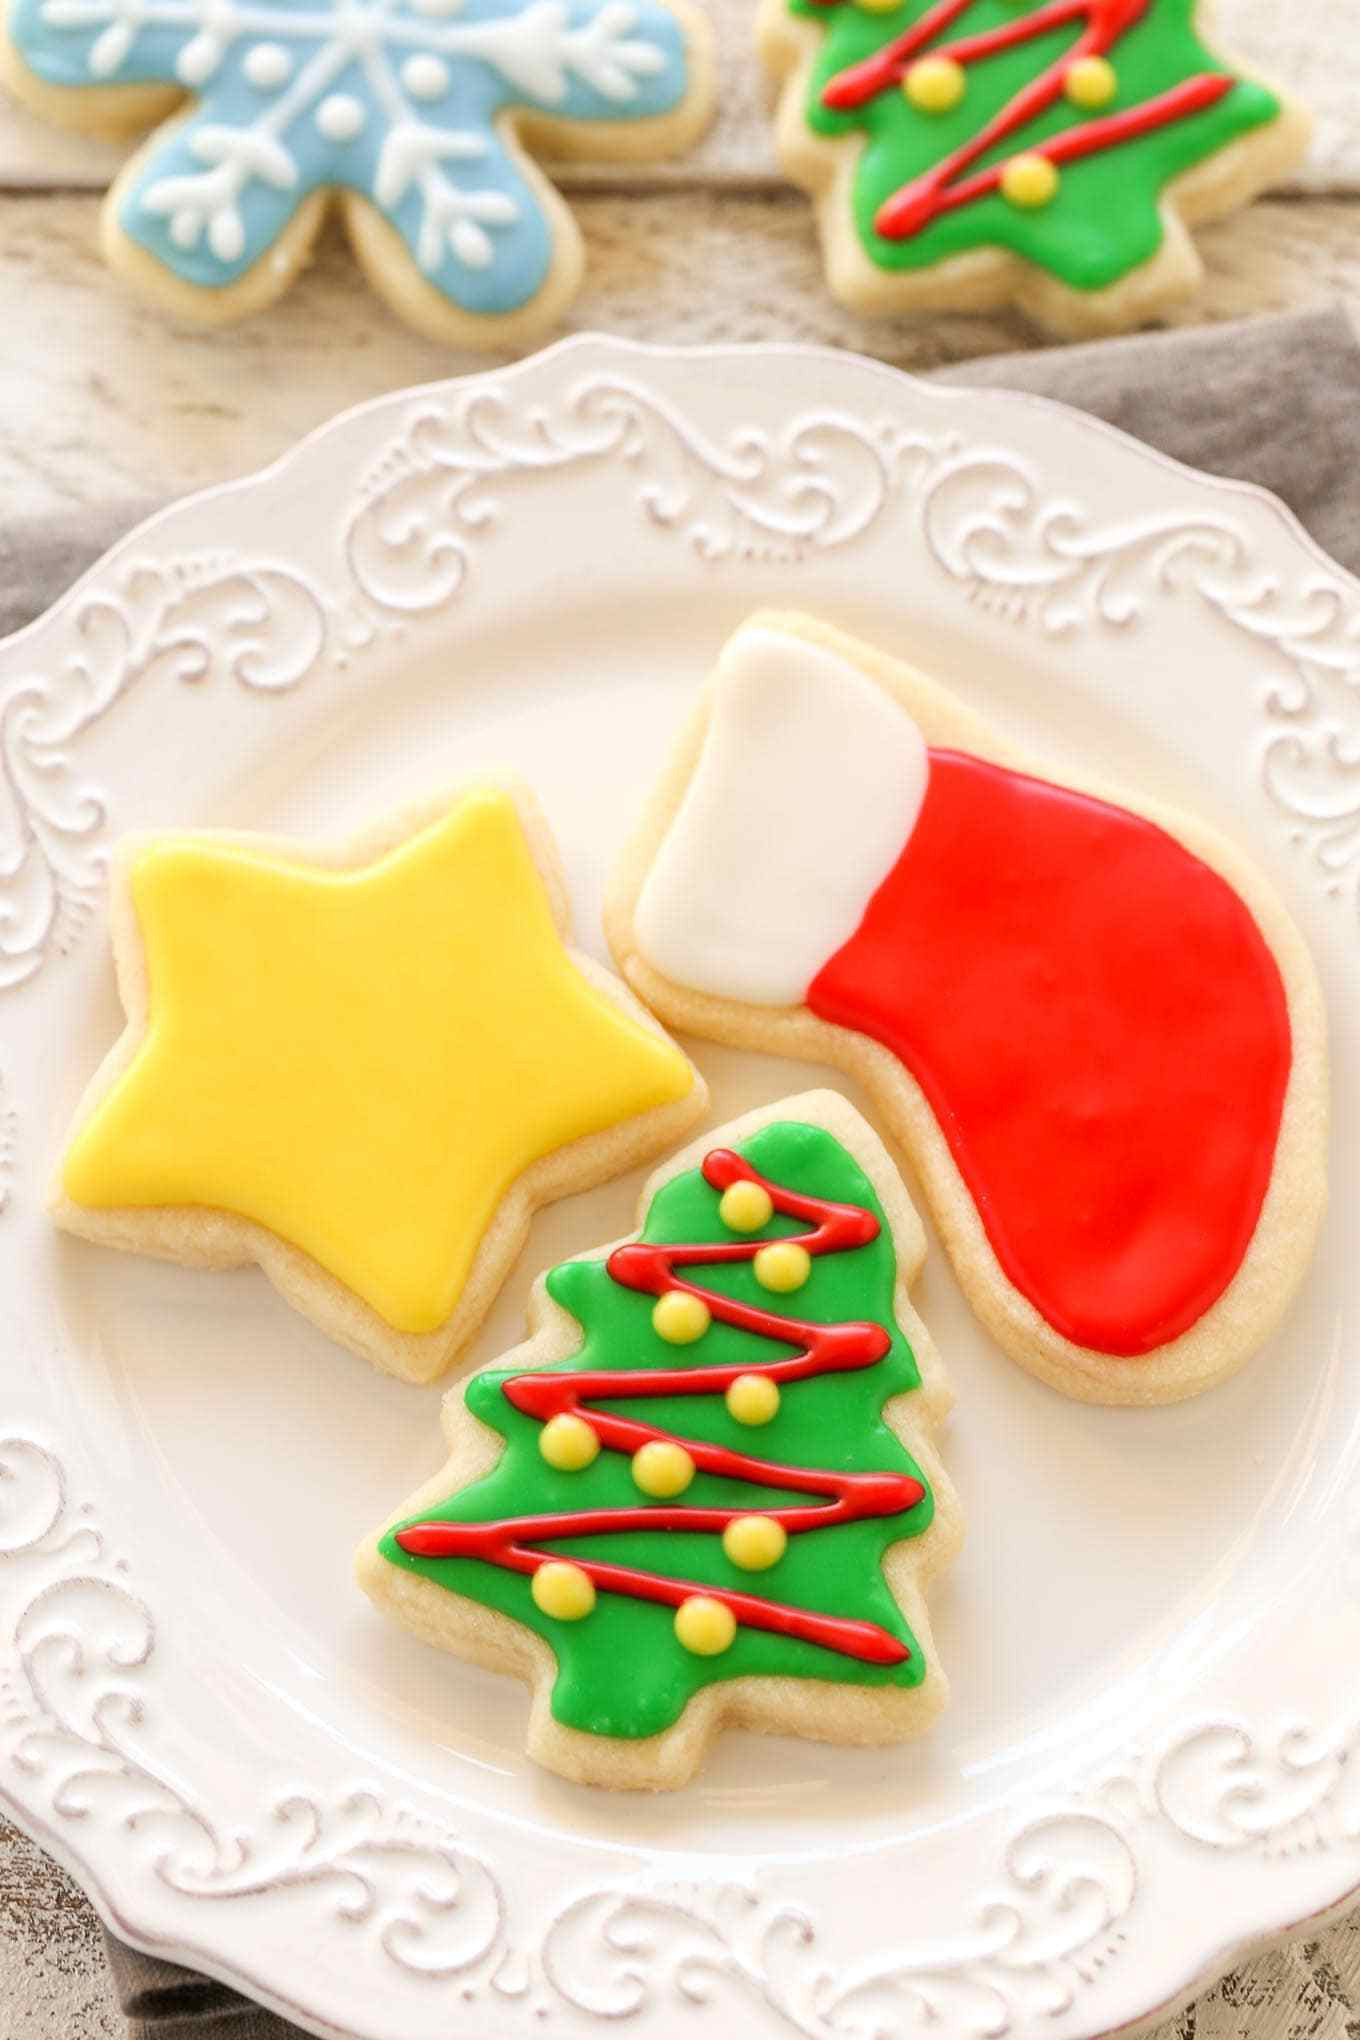 Icing For Christmas Cookies  Soft Christmas Cut Out Sugar Cookies Live Well Bake ten